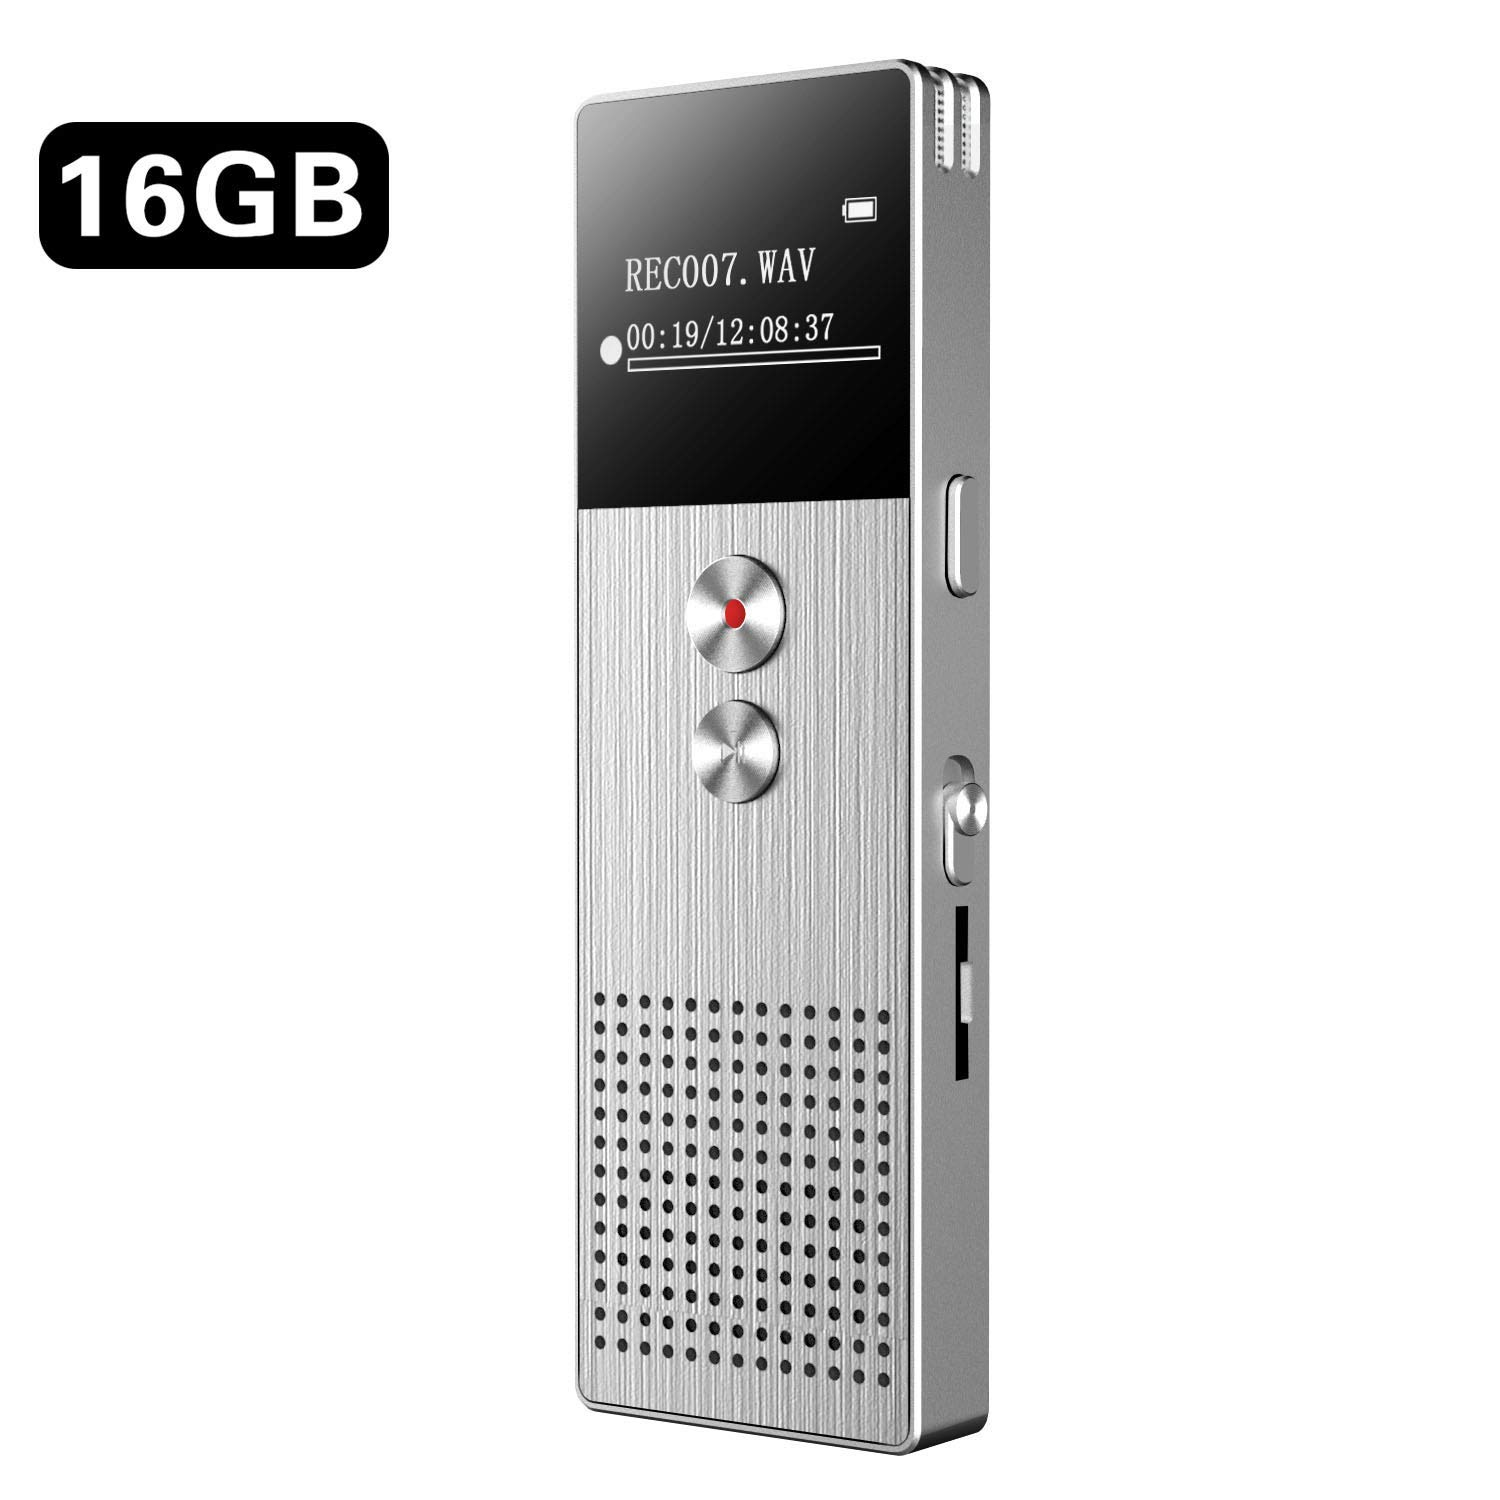 Digital Voice Recorder 16GB, BENGJIE Voice Activated Recorder with Playback, Sound Audio Recorder Dictaphone for Lectures/Meetings/Interviews, Mini Voice Recorder MP3 Player Support up to 32G TF Card